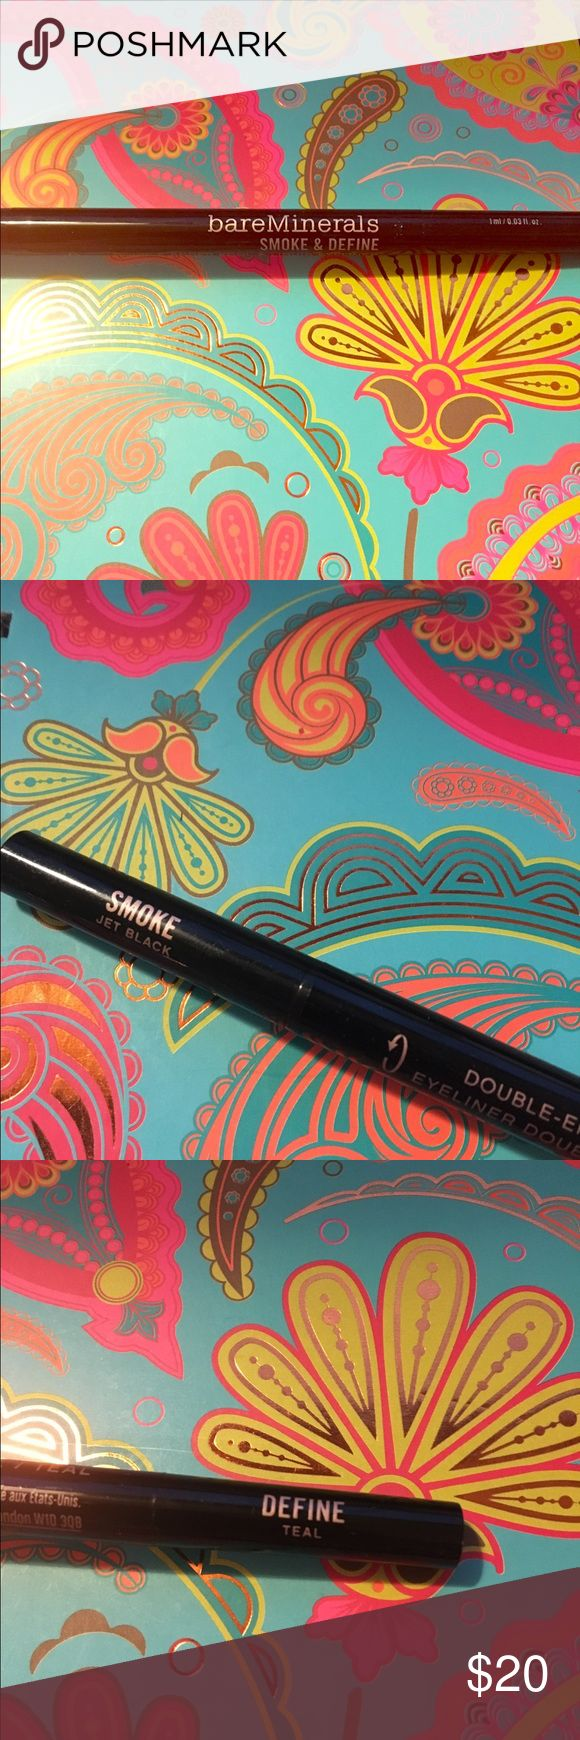 NewBareMinerals Smoke & Define kohl & liquid liner New double ended Bareminerals smoke and define. Kohl liner in jet black and liquid liner in teal. bareMinerals Makeup Eyeliner